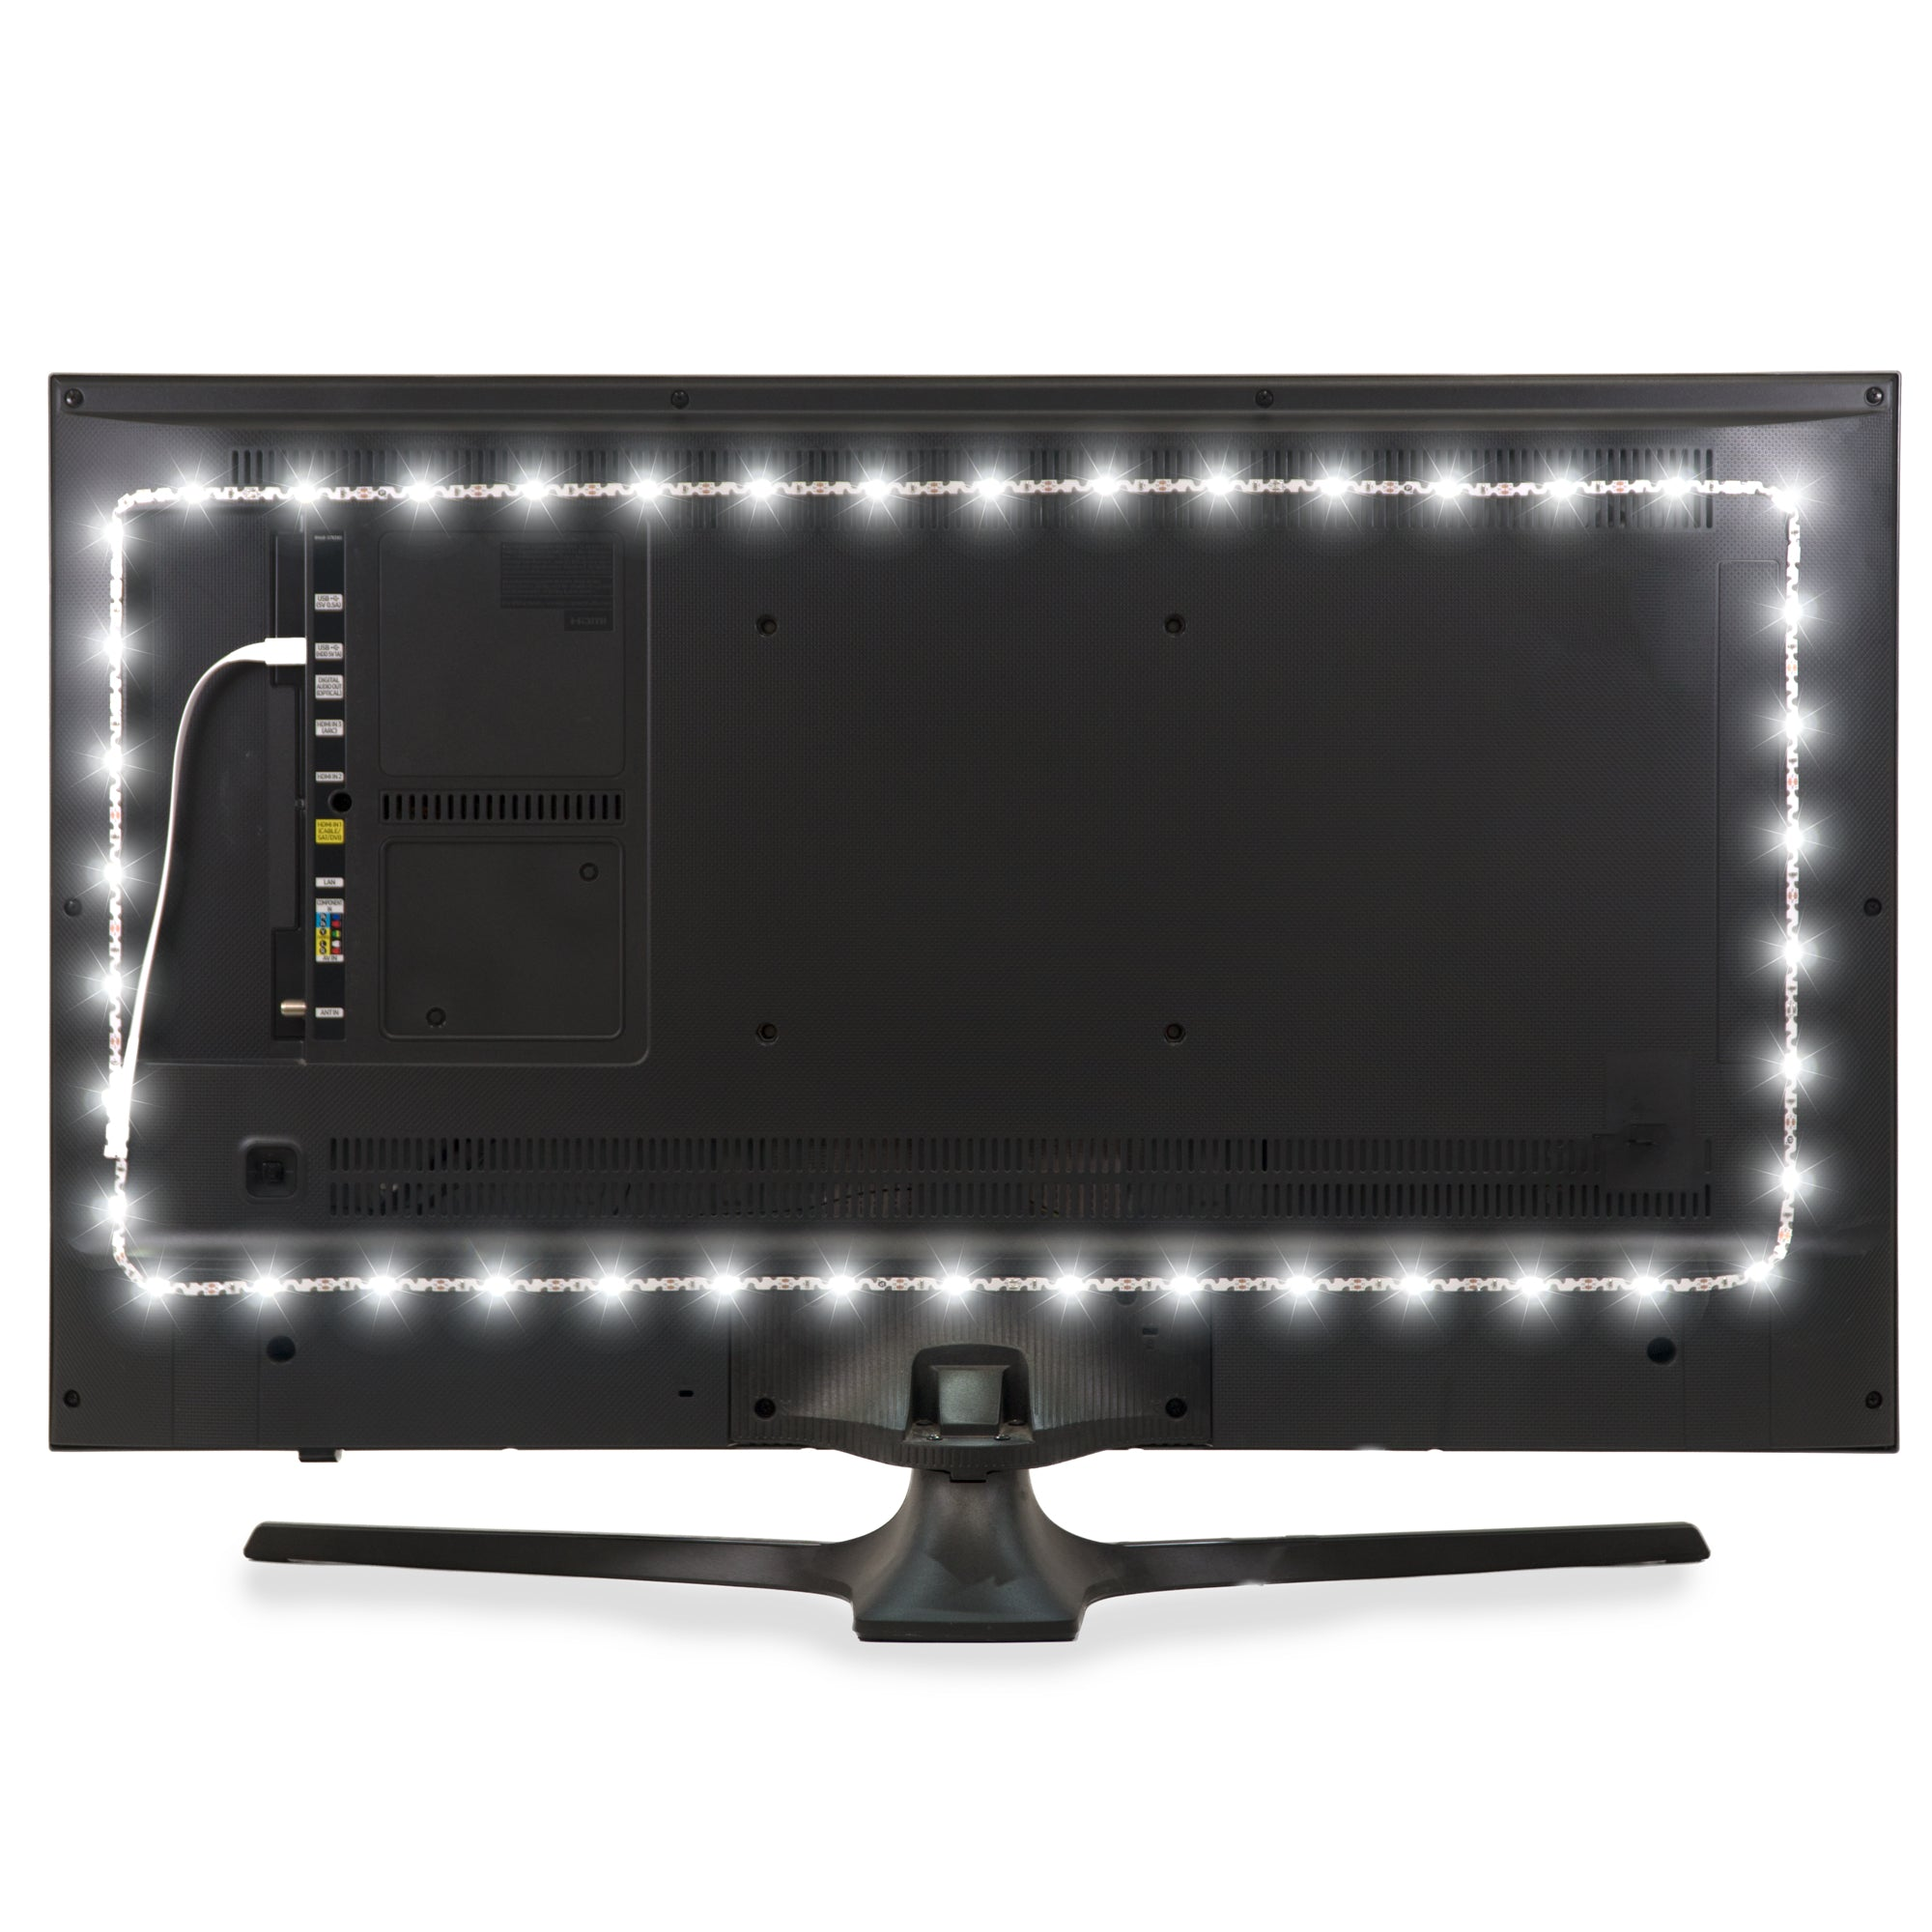 luminoodle bias lighting tv monitor backlight power practical